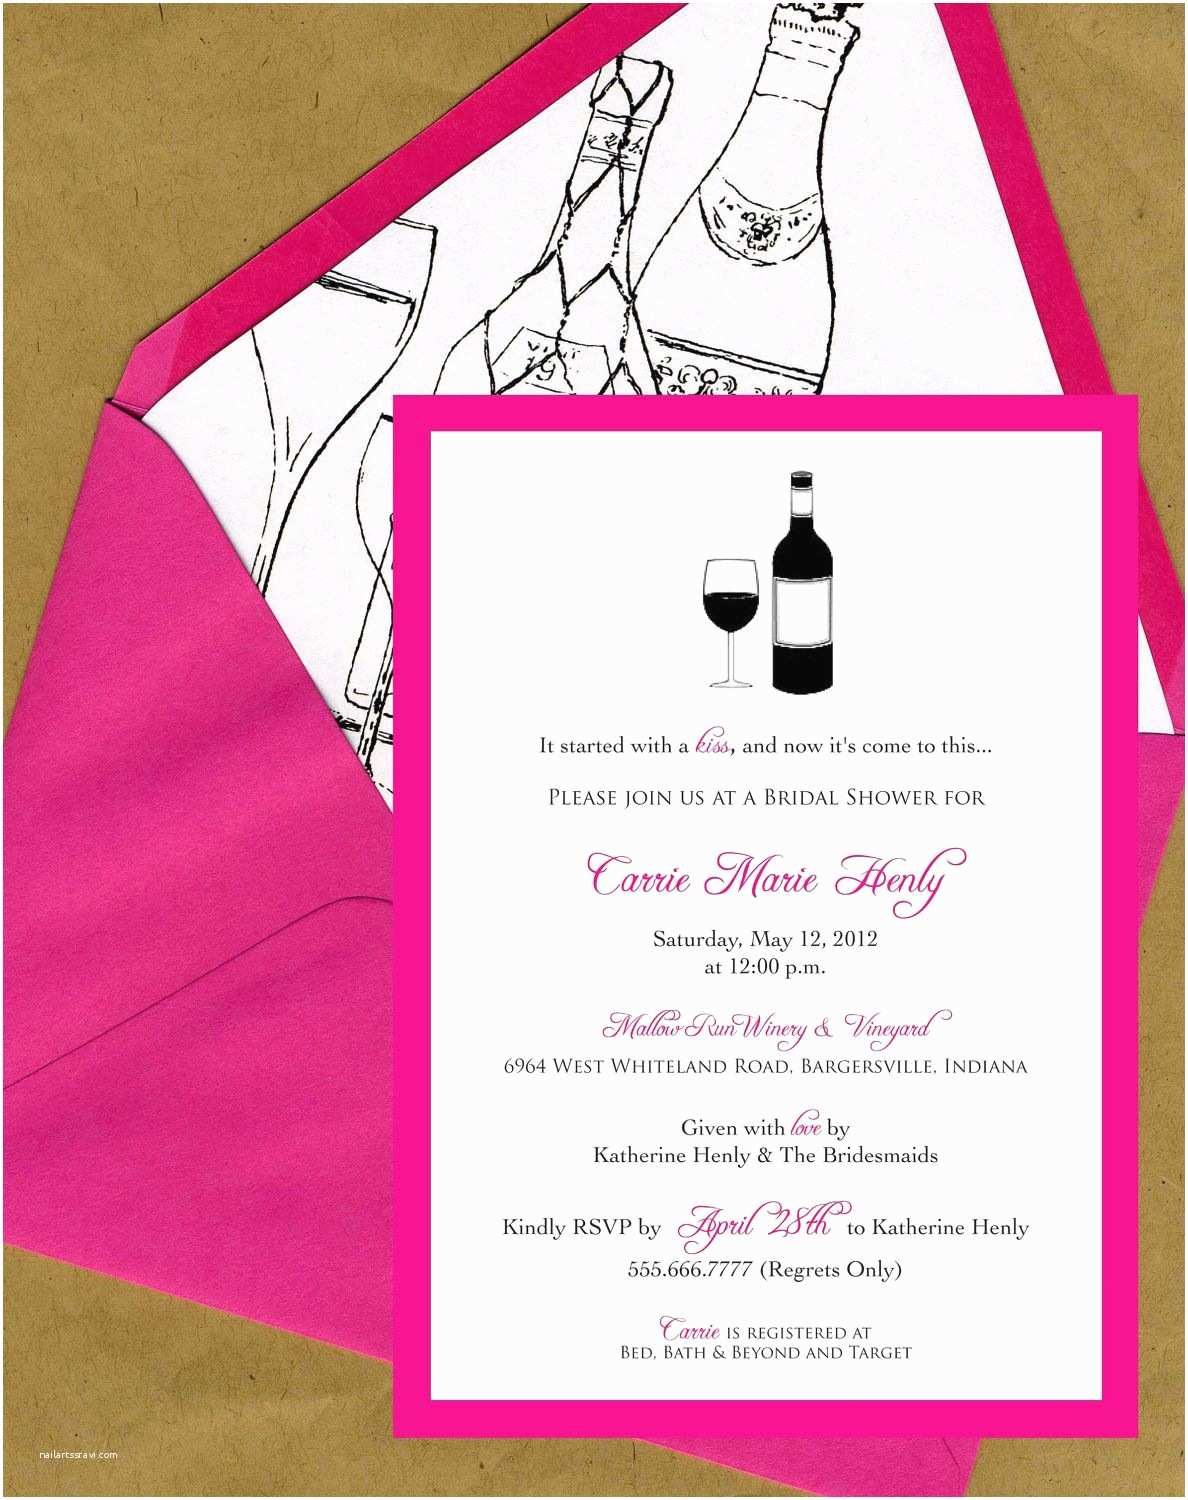 Wine themed Bridal Shower Invitations Wine themed Bridal Shower Invitations Winery themed